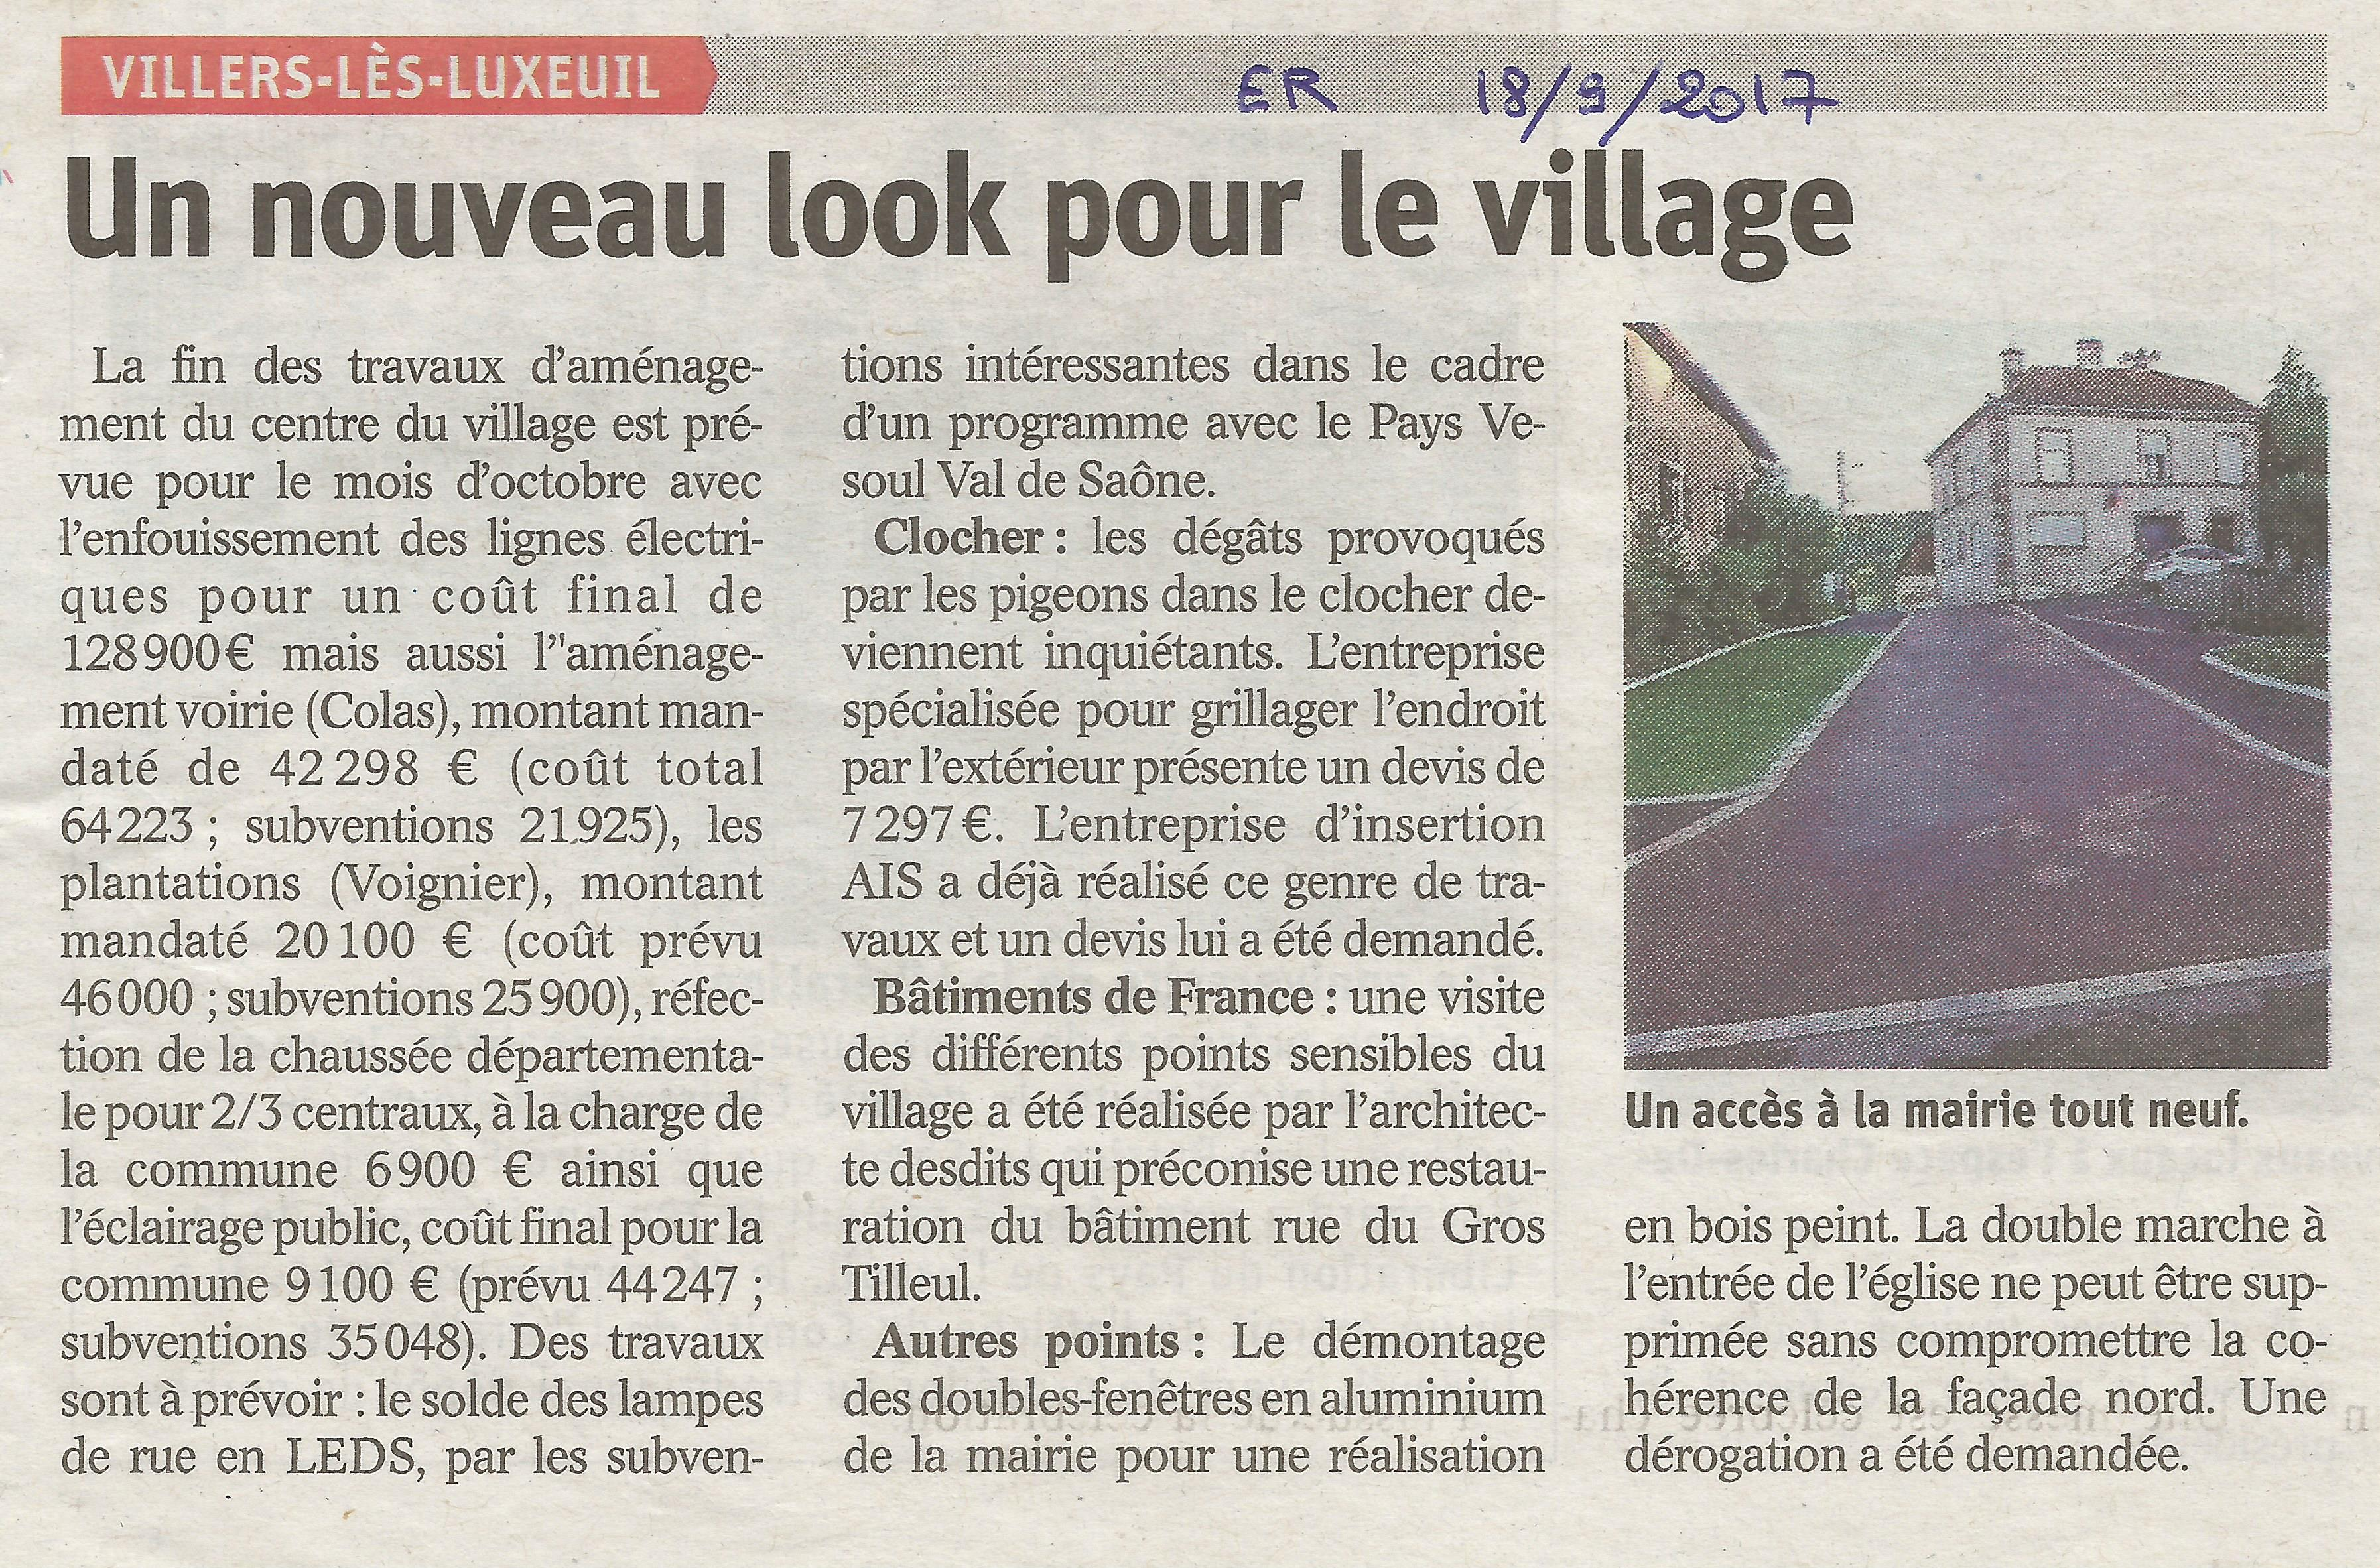 https://www.villers-les-luxeuil.com/projets/villers/files/images/2017_Mairie/Presse/2017_09_18.jpg